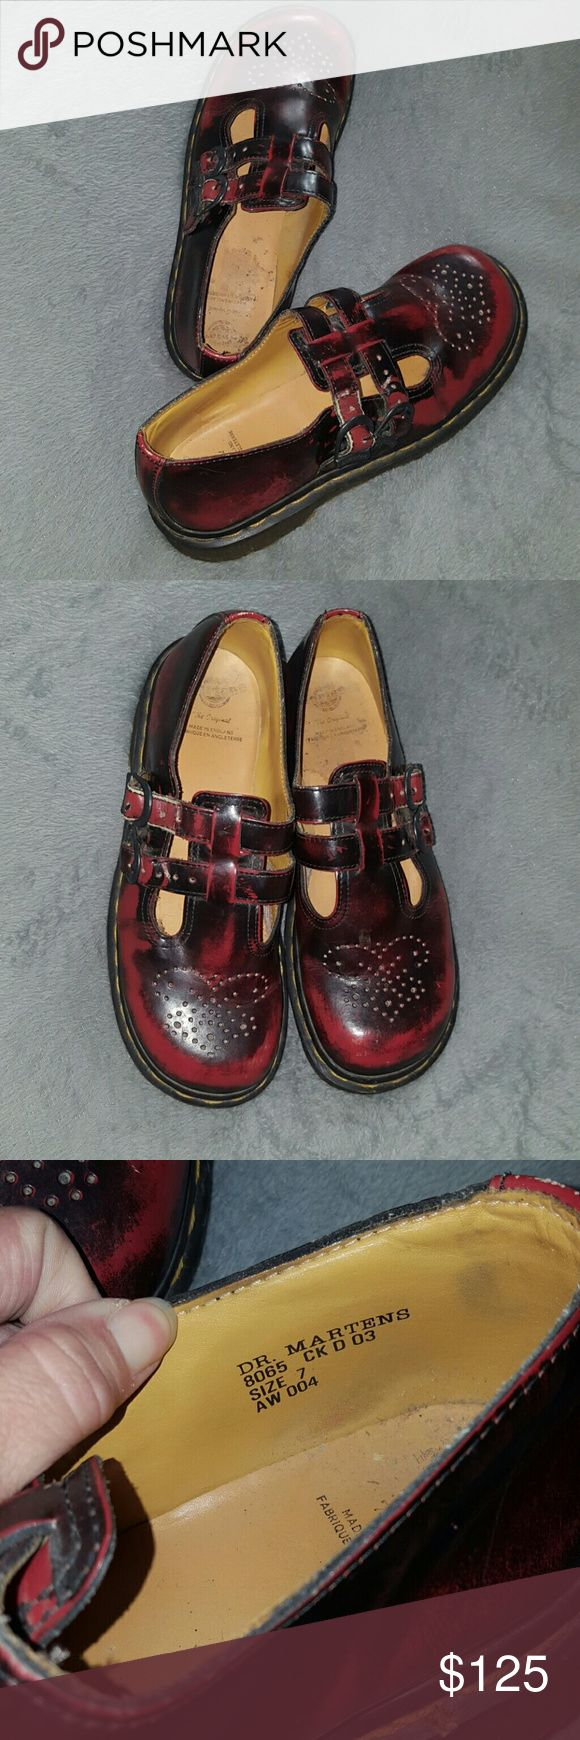 Dr. Martens Mary Jane Shoes UK 7/US 9 Cherry Black Dr. Martens Mary Jane Shoes UK 7/US 9 Cherry Black. Lightly worn...Amazing high quality shoe that lasts! Dr. Martens 8065. I ship daily (#B1 location) Dr. Martens are made in England and size is marked a 7 UK but with thE CONVERSION as pictured from tbe Dr. Martens website is equivalent to a us size 9. Dr. Martens Shoes